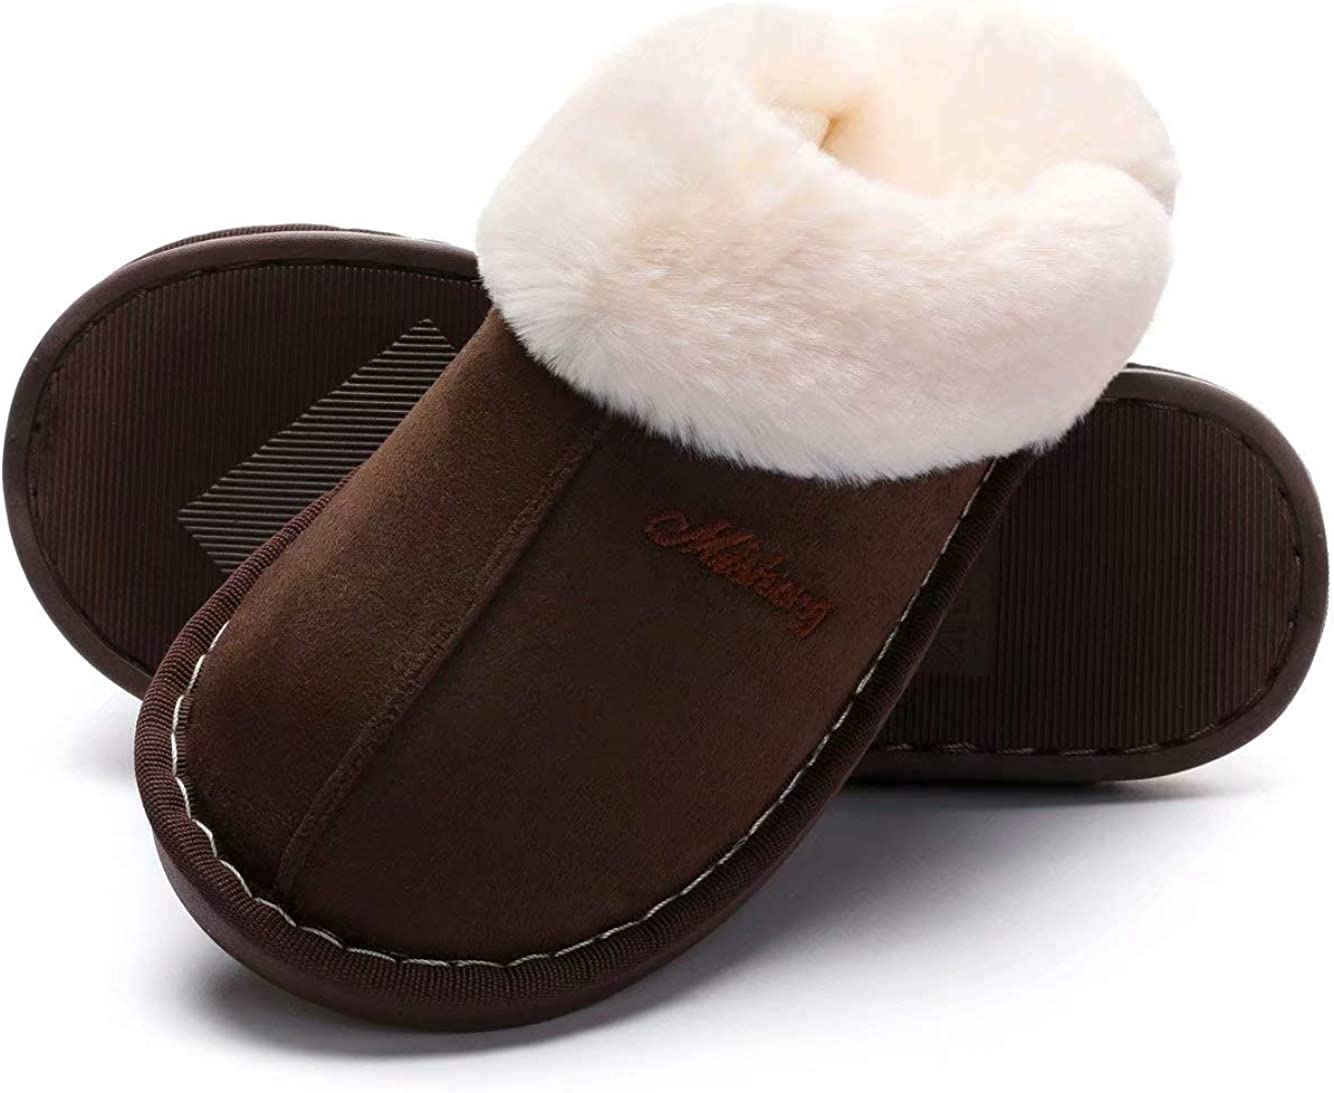 SincereWay Women's Inventory cleanup selling sale Low price Cozy Bedroom Slippers Sli House Fuzzy Outdoor